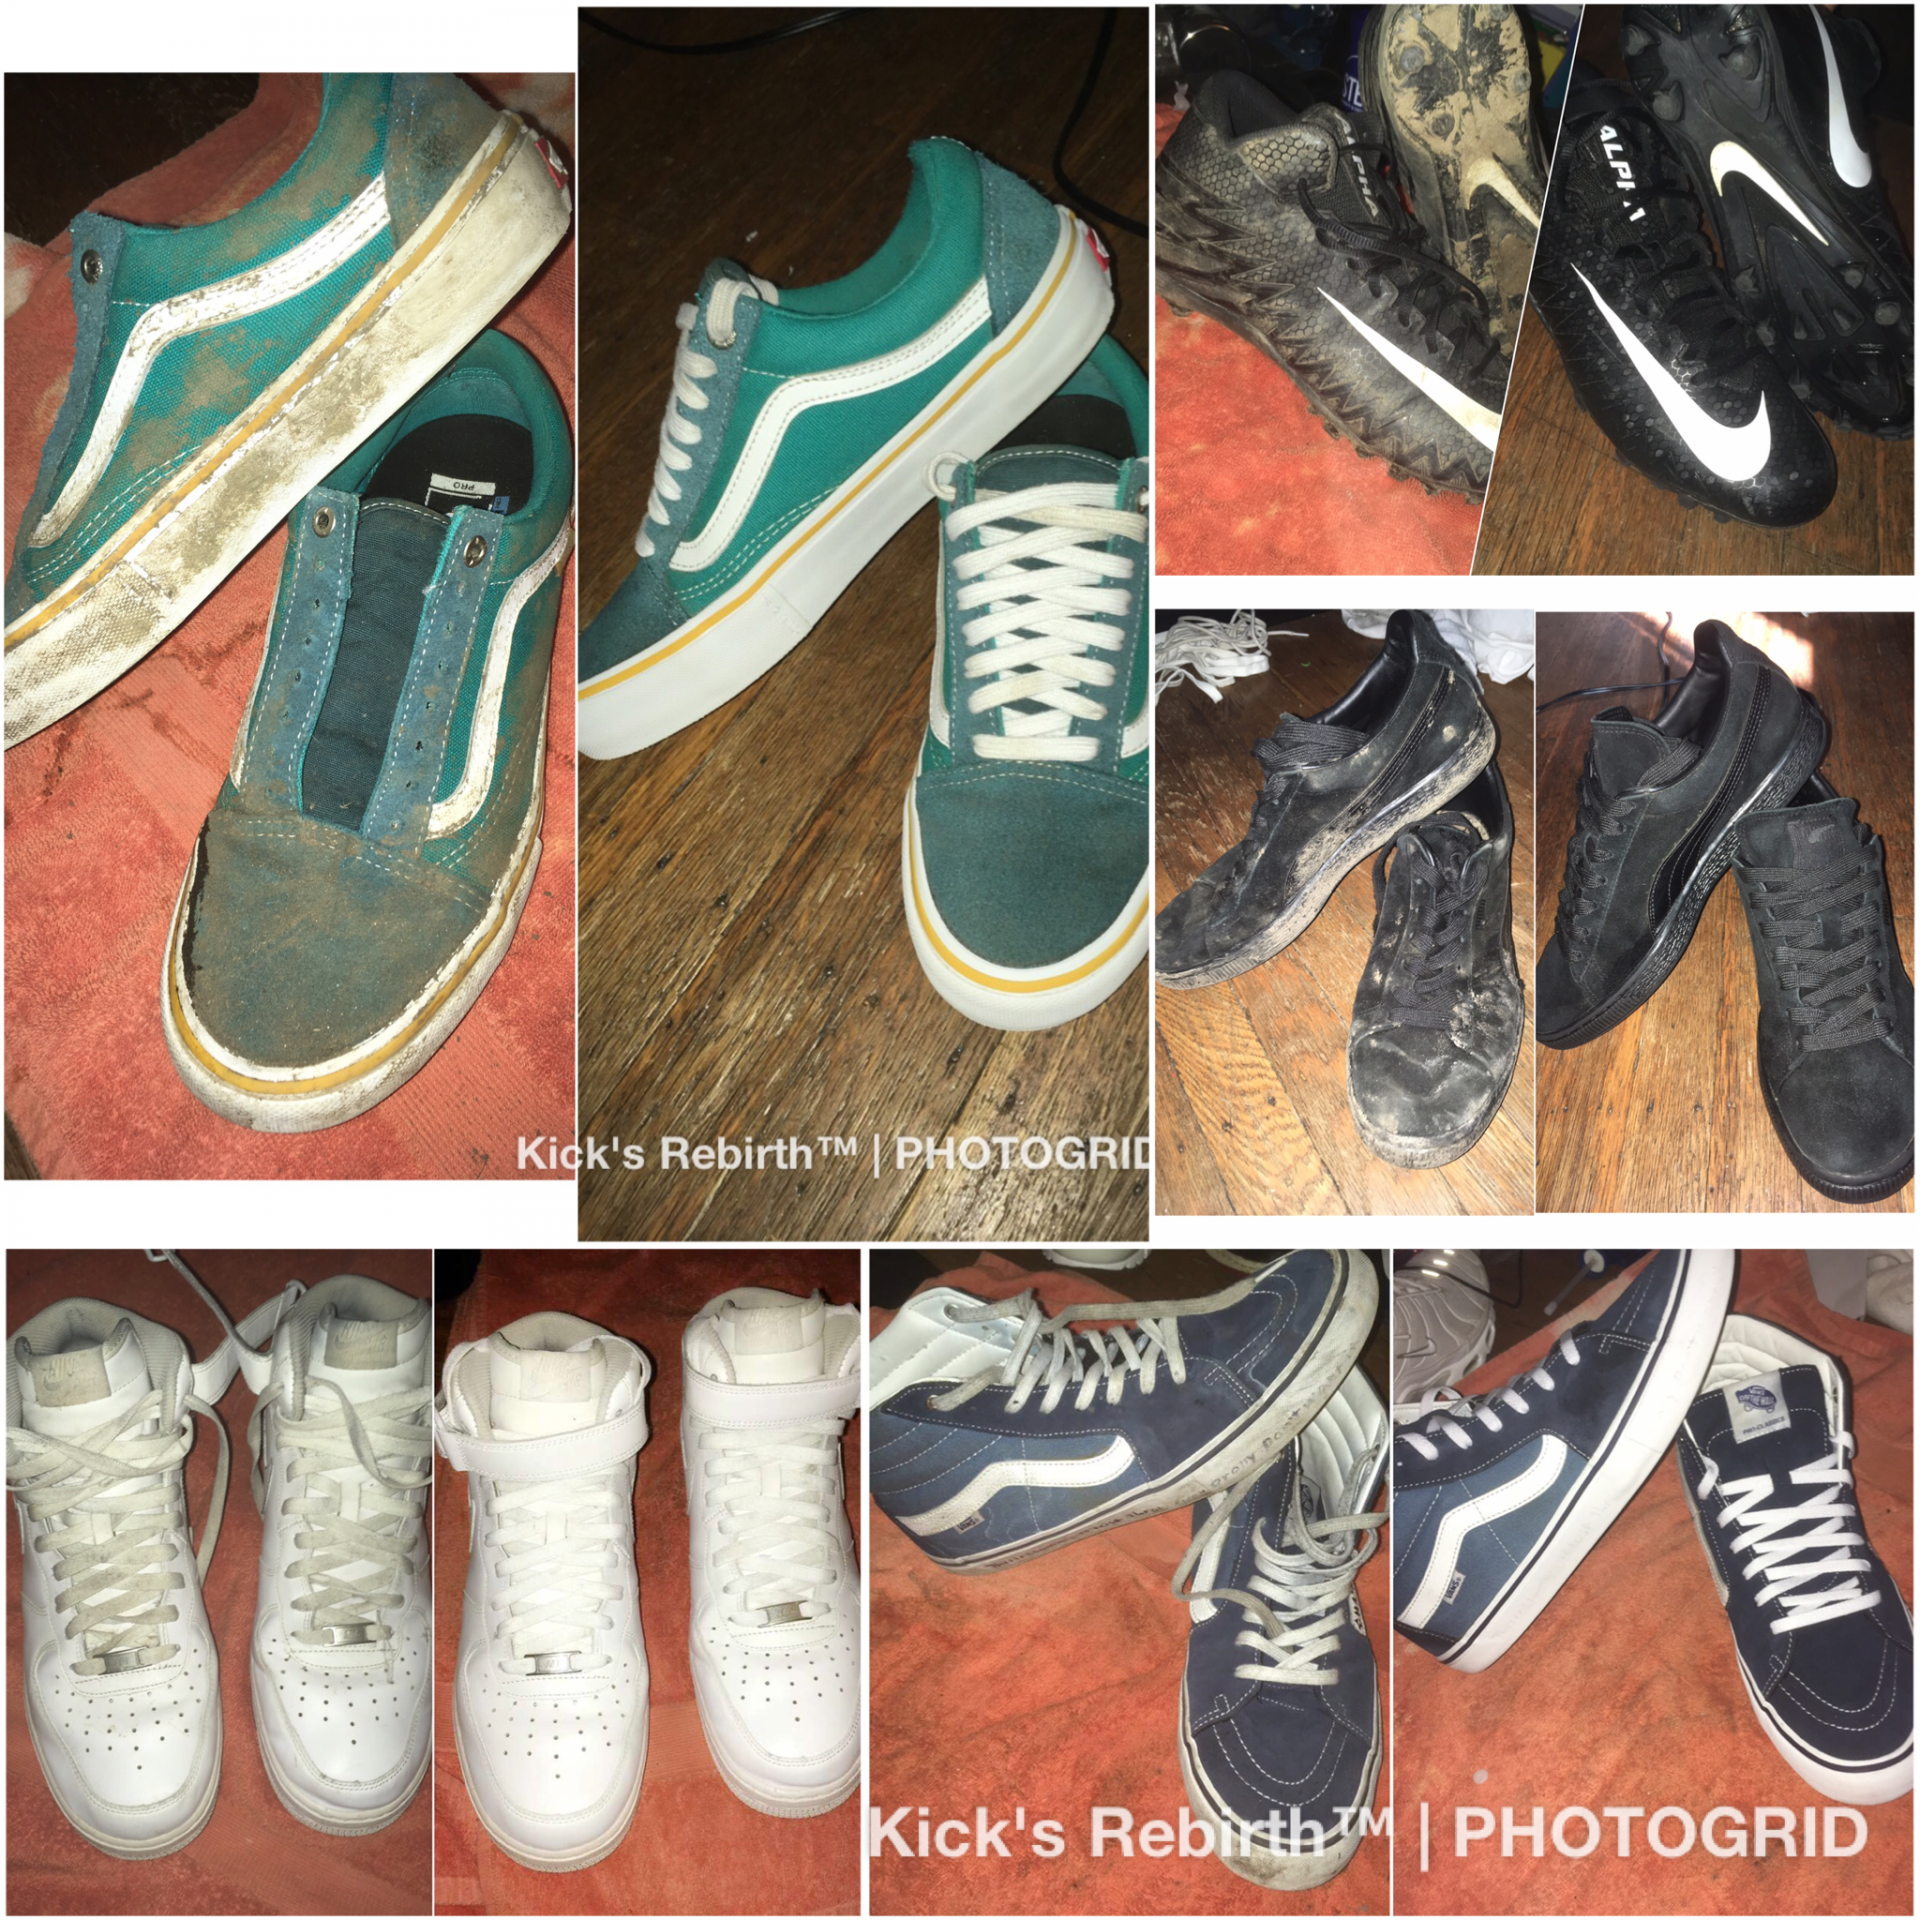 Examples of Kicks that have been reborn.